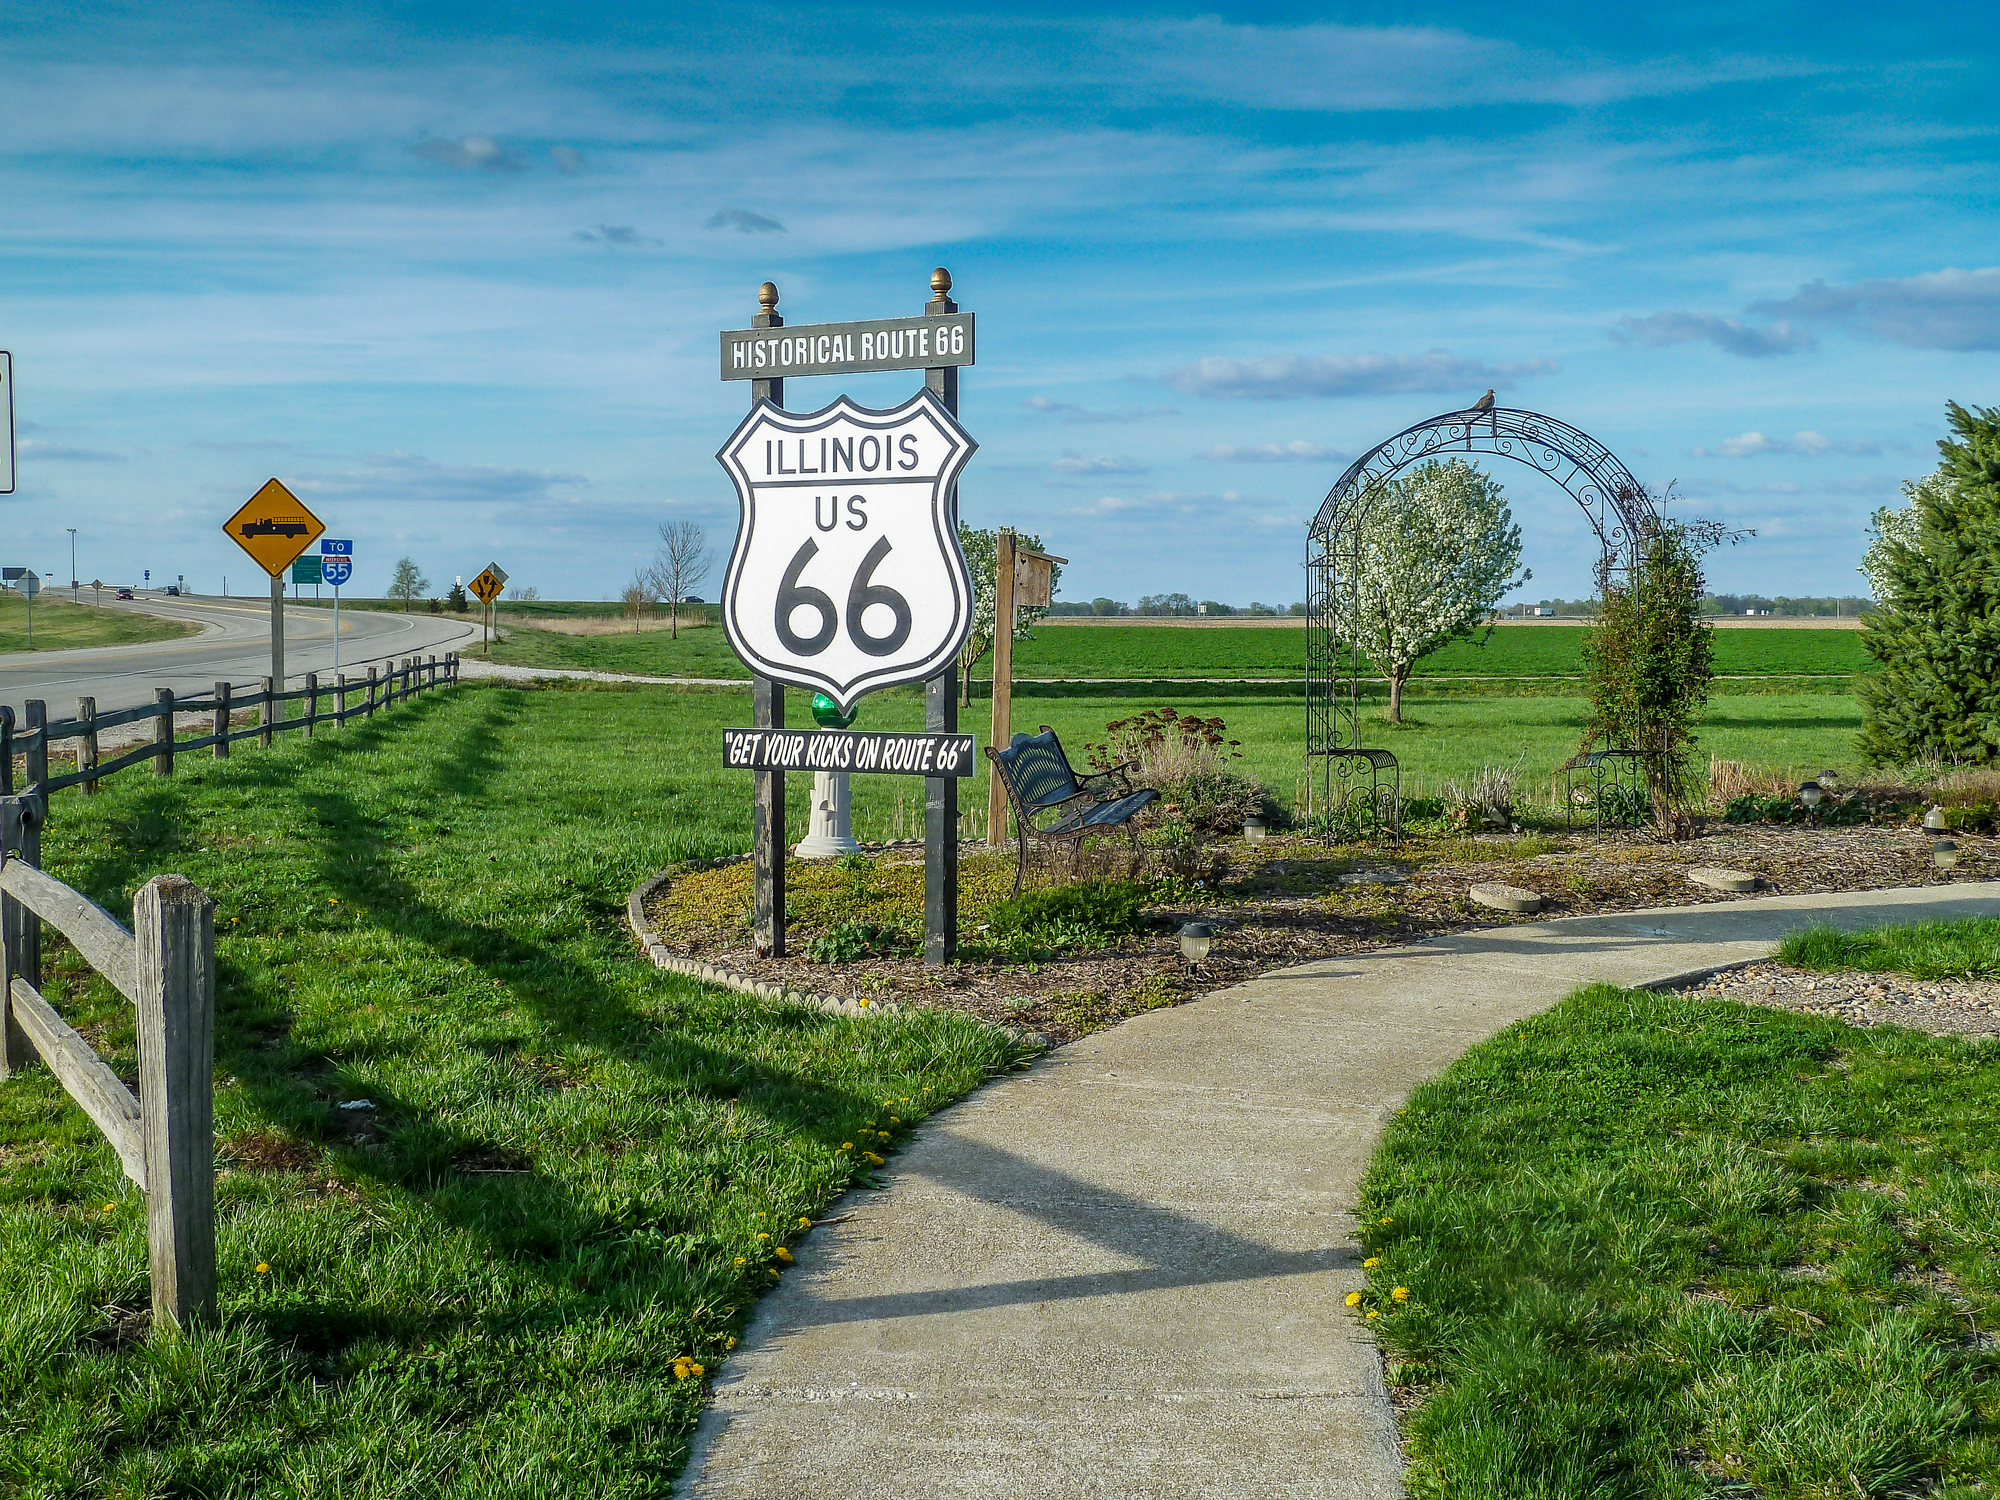 Historical Route 66 sign in Illinois